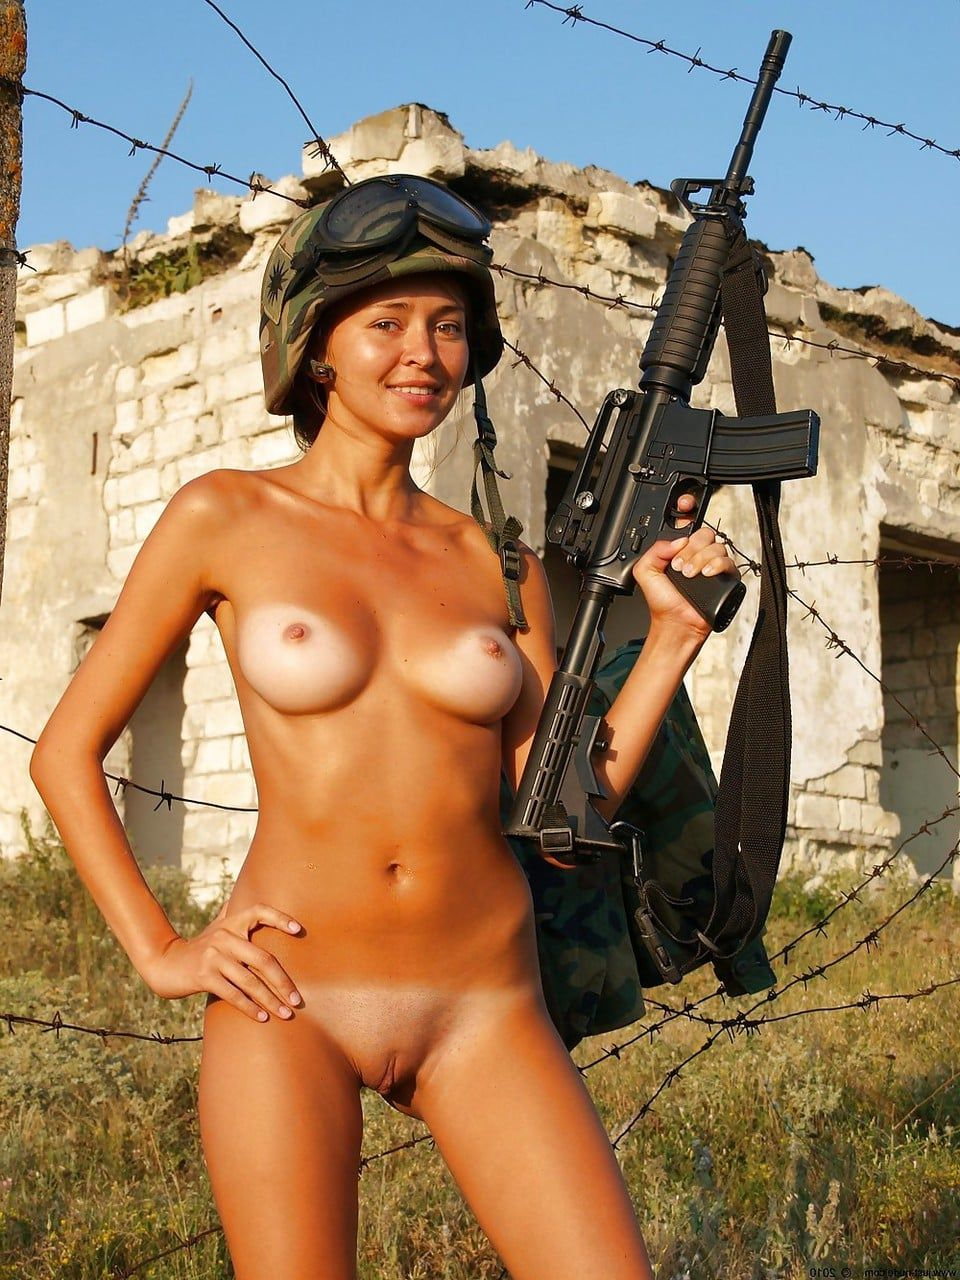 Hot naked chicks with guns seems me